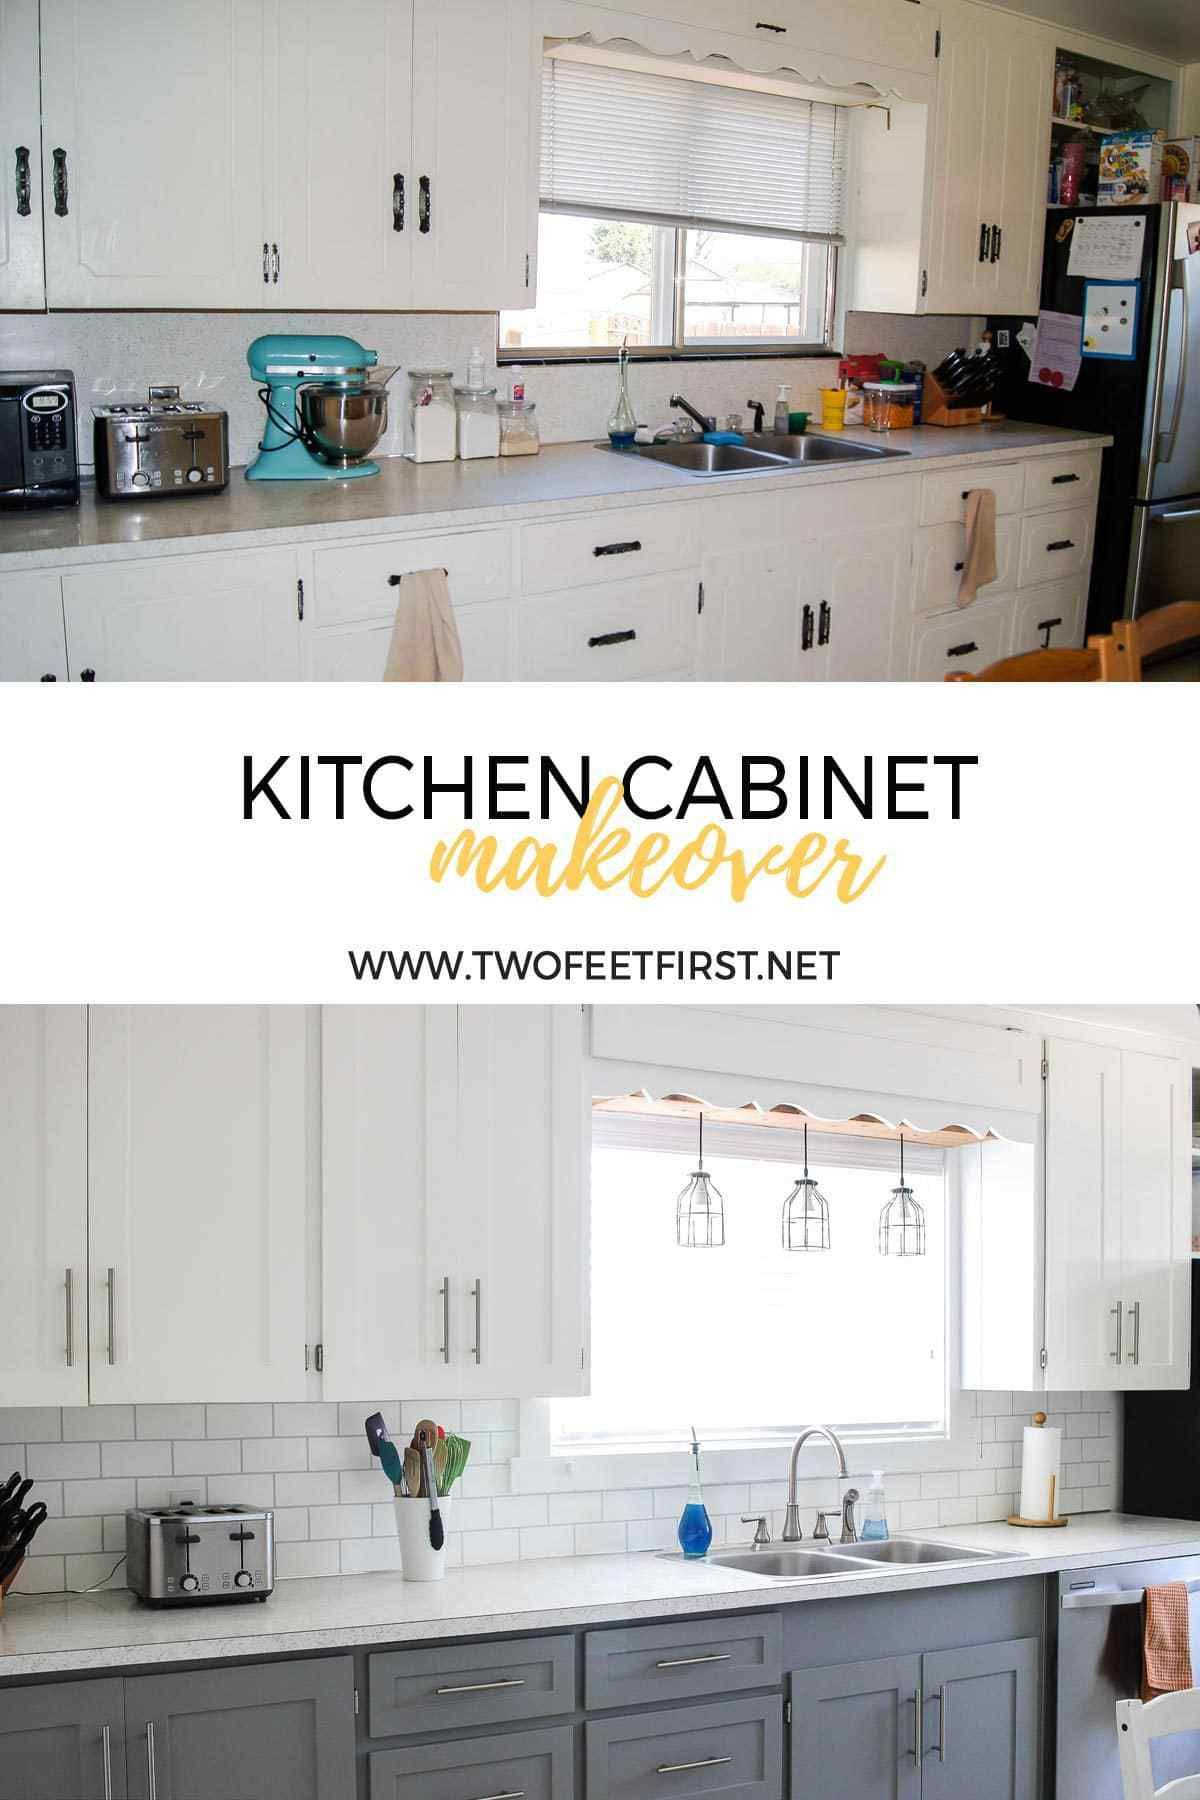 Tips On Painting Kitchen Cabinets With A Paint Sprayer Diy Kitchen Renovation Kitchen Cabinets Makeover Kitchen Renovation